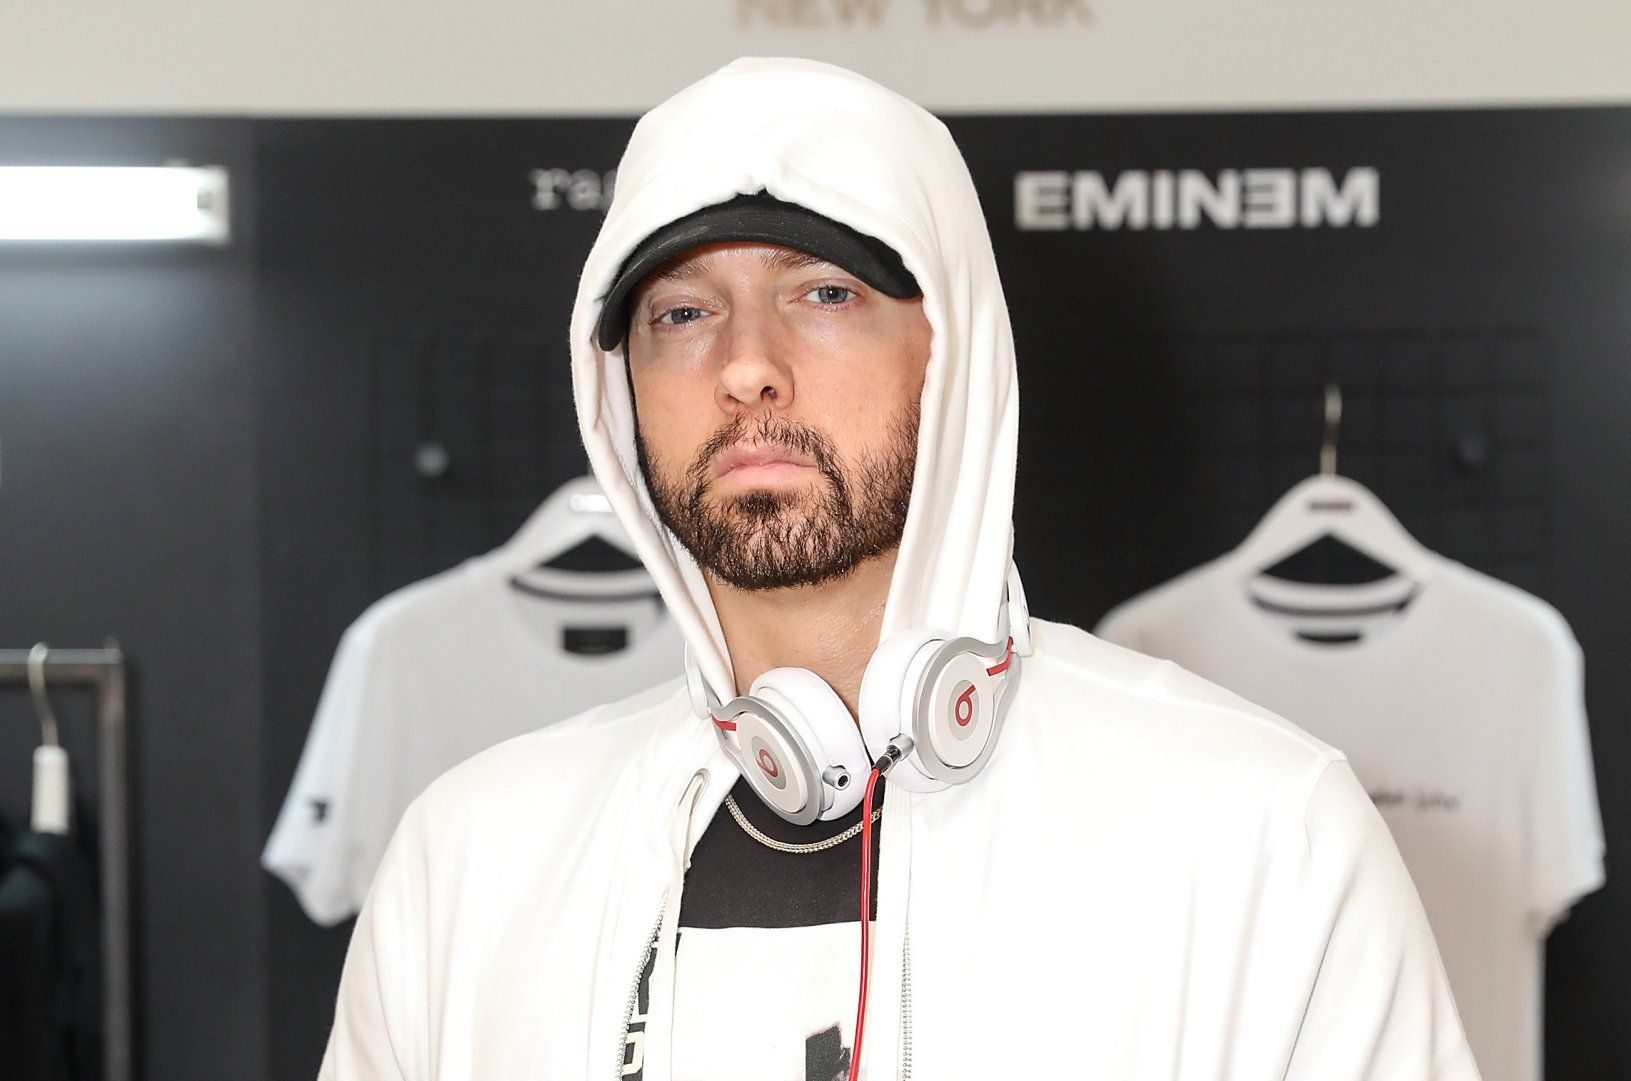 Eminem's Kamikaze lyrics and meaning as new diss album drops